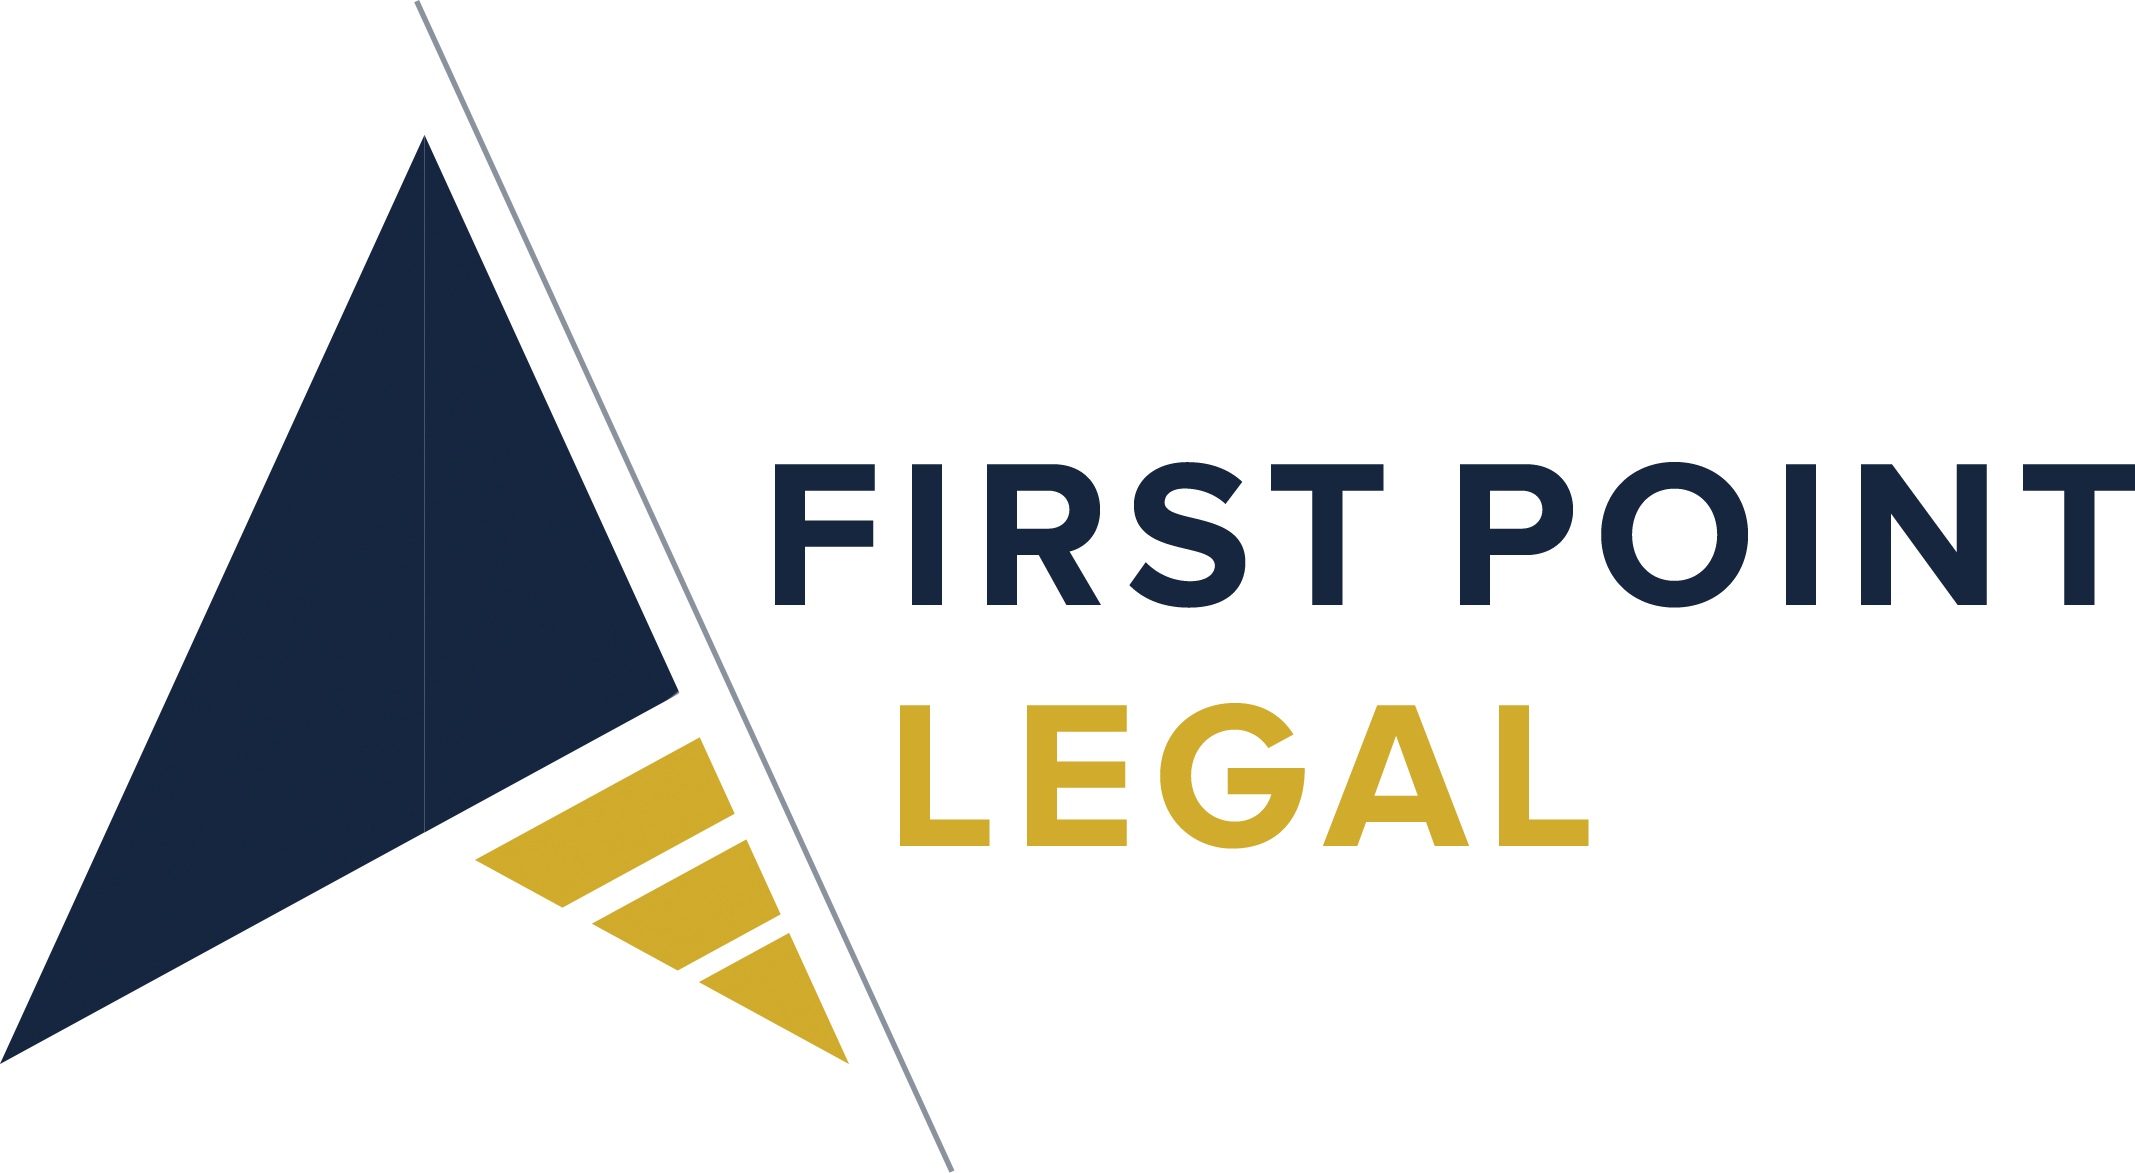 First Point Legal